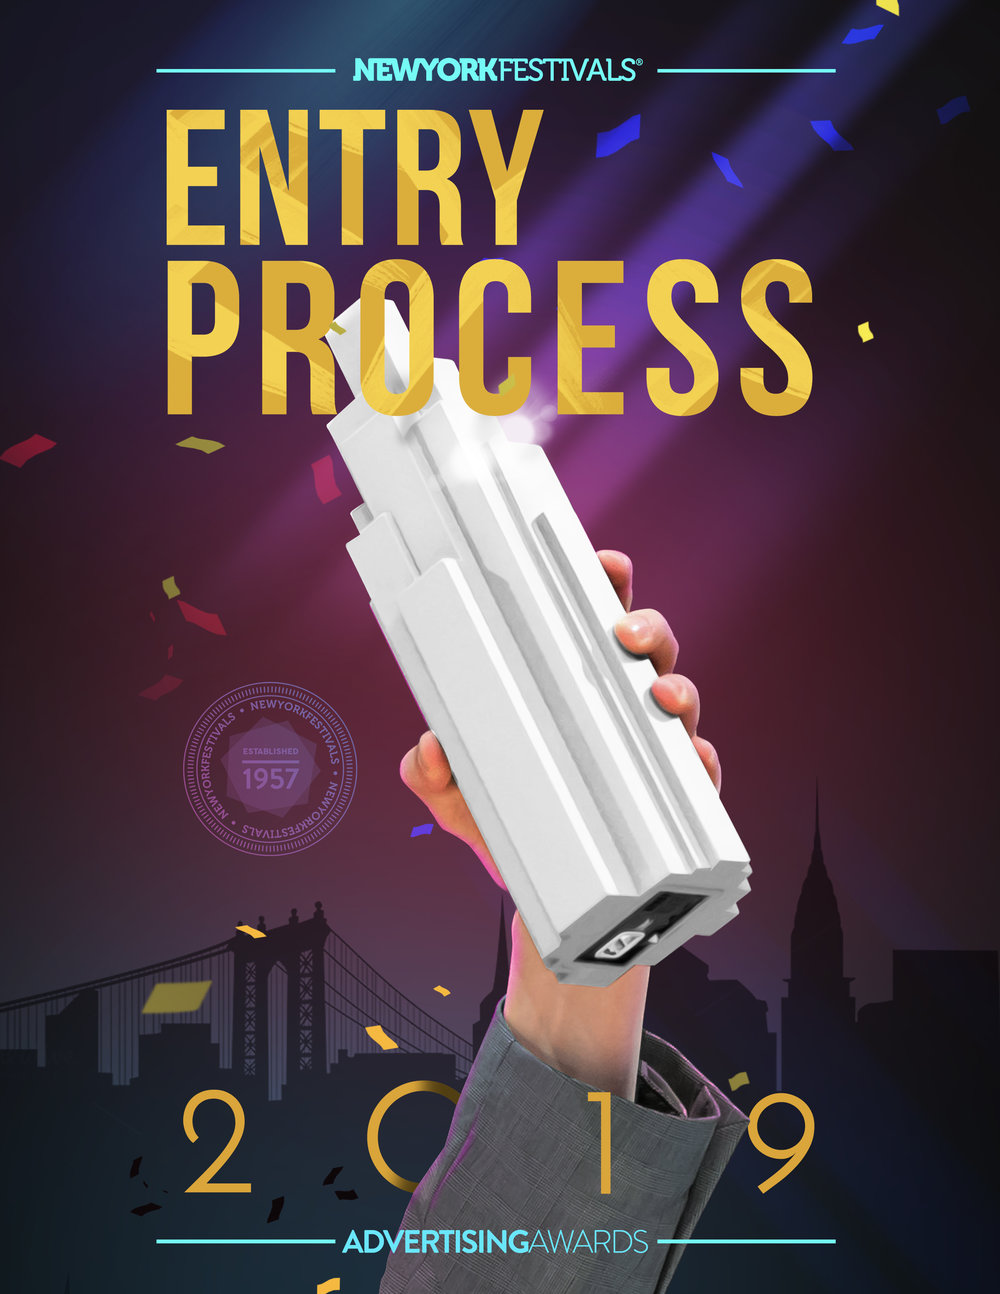 Learn more about our simple, easy entry process. Here we provide screen grabs, and additional information to make your entry process as efficient and fast as possible.